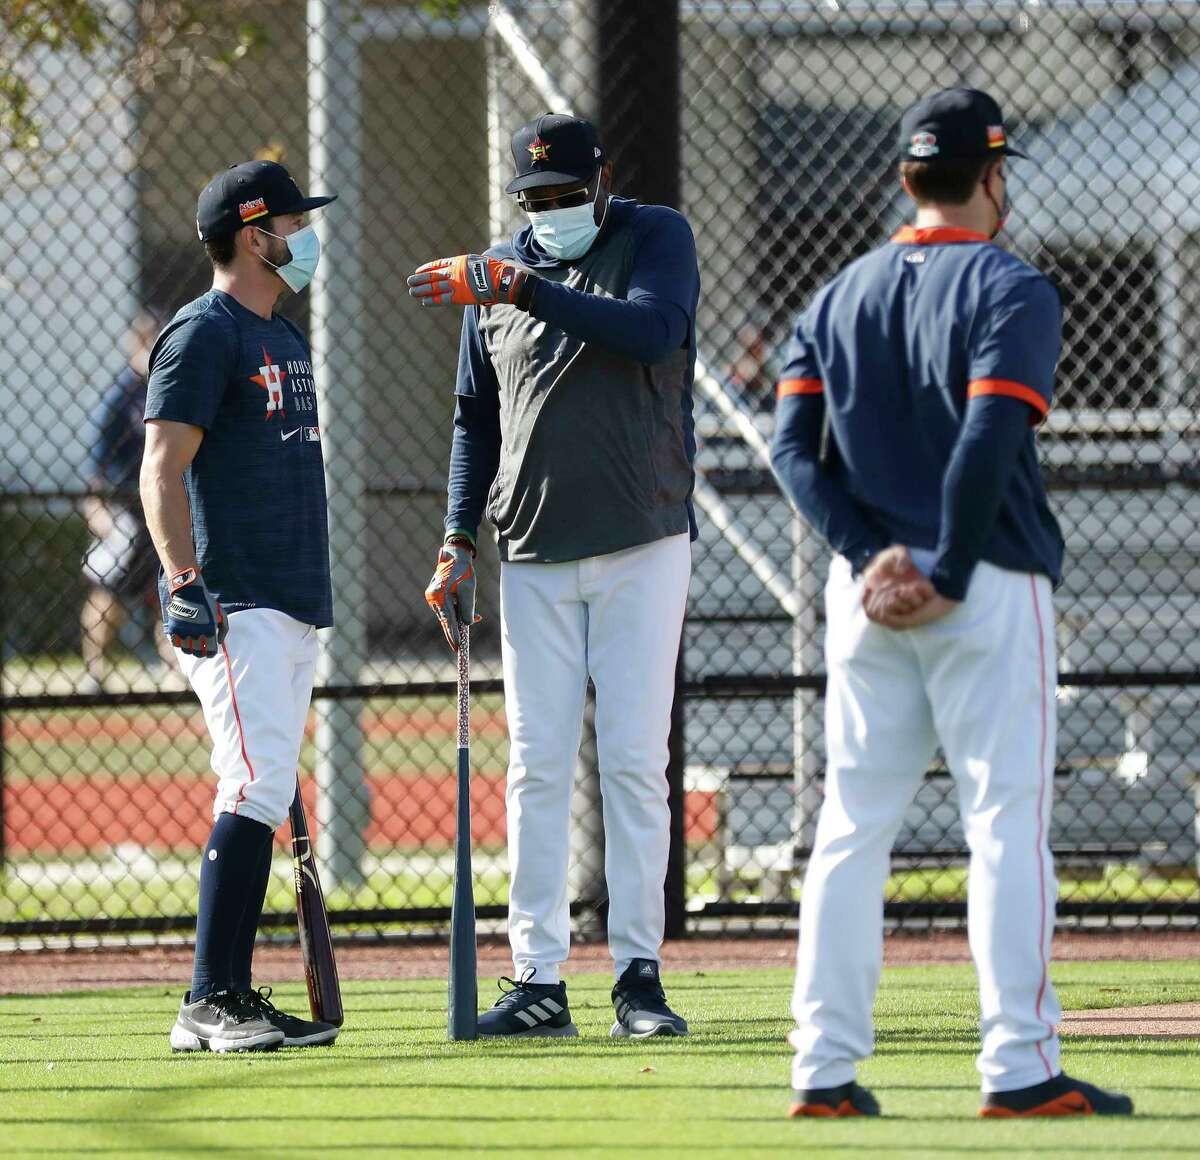 Houston Astros manager Dusty Baker talks with catcher Garrett Stubbs during the first full squad workouts for the Astros, in West Palm Beach, Florida, Monday, February 22, 2021.